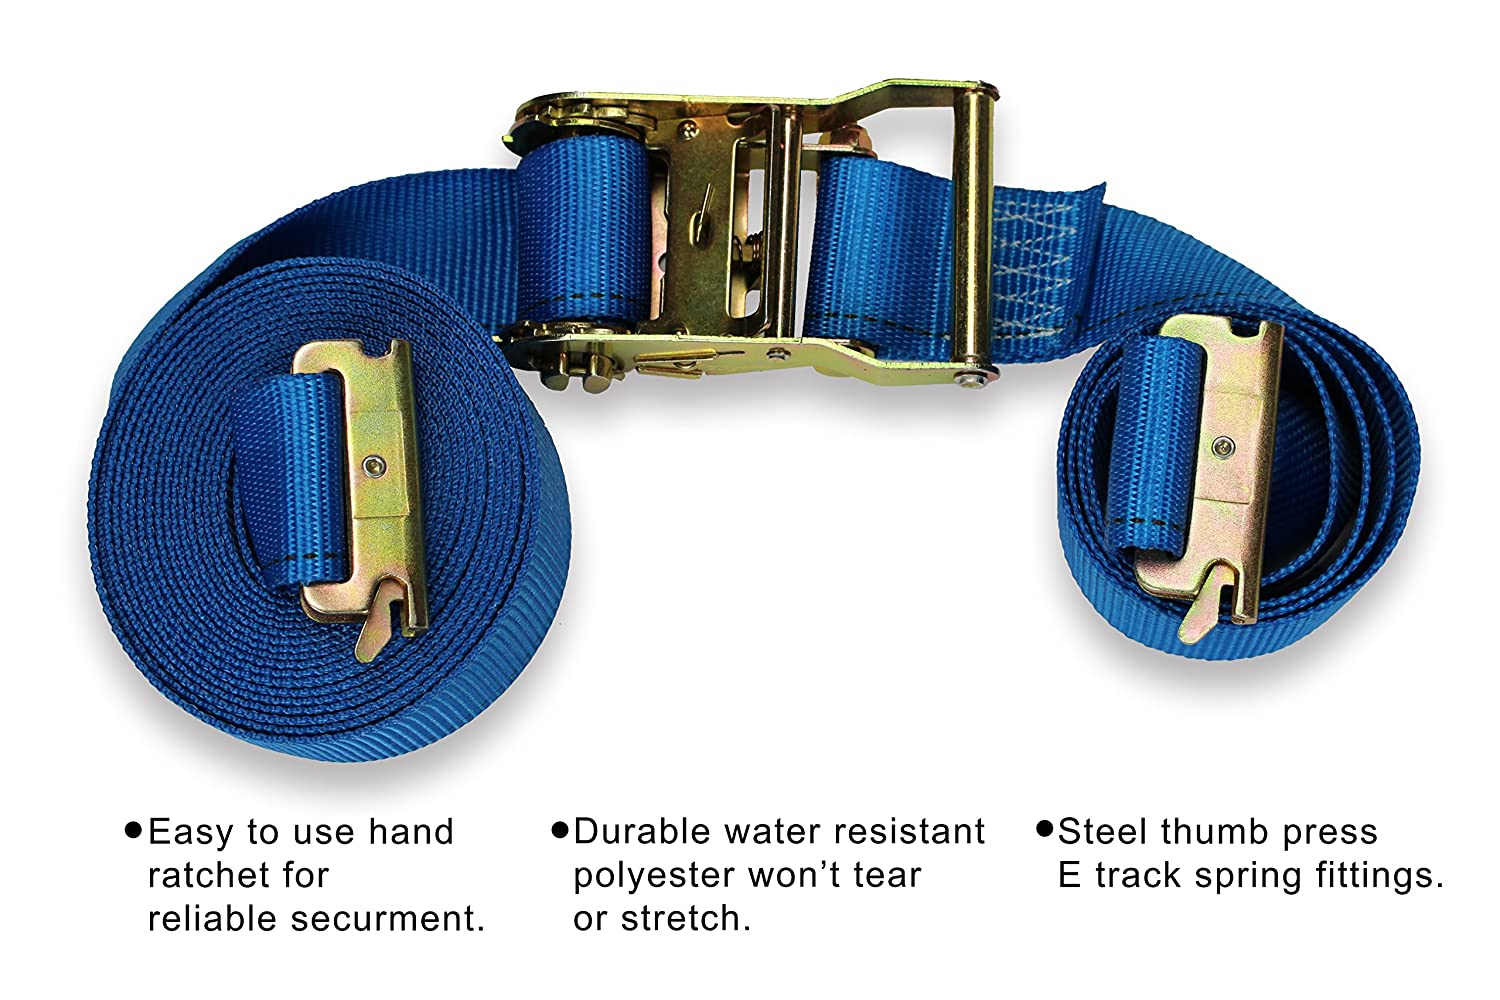 ETrack Spring Fittings Durable Blue Polyester Tie-Down Ratchet Strap Trailer Loads by DC Cargo Mall Tie Down Motorcycles 2 x 20 E Track Ratcheting Strap Heavy Duty Cargo TieDown